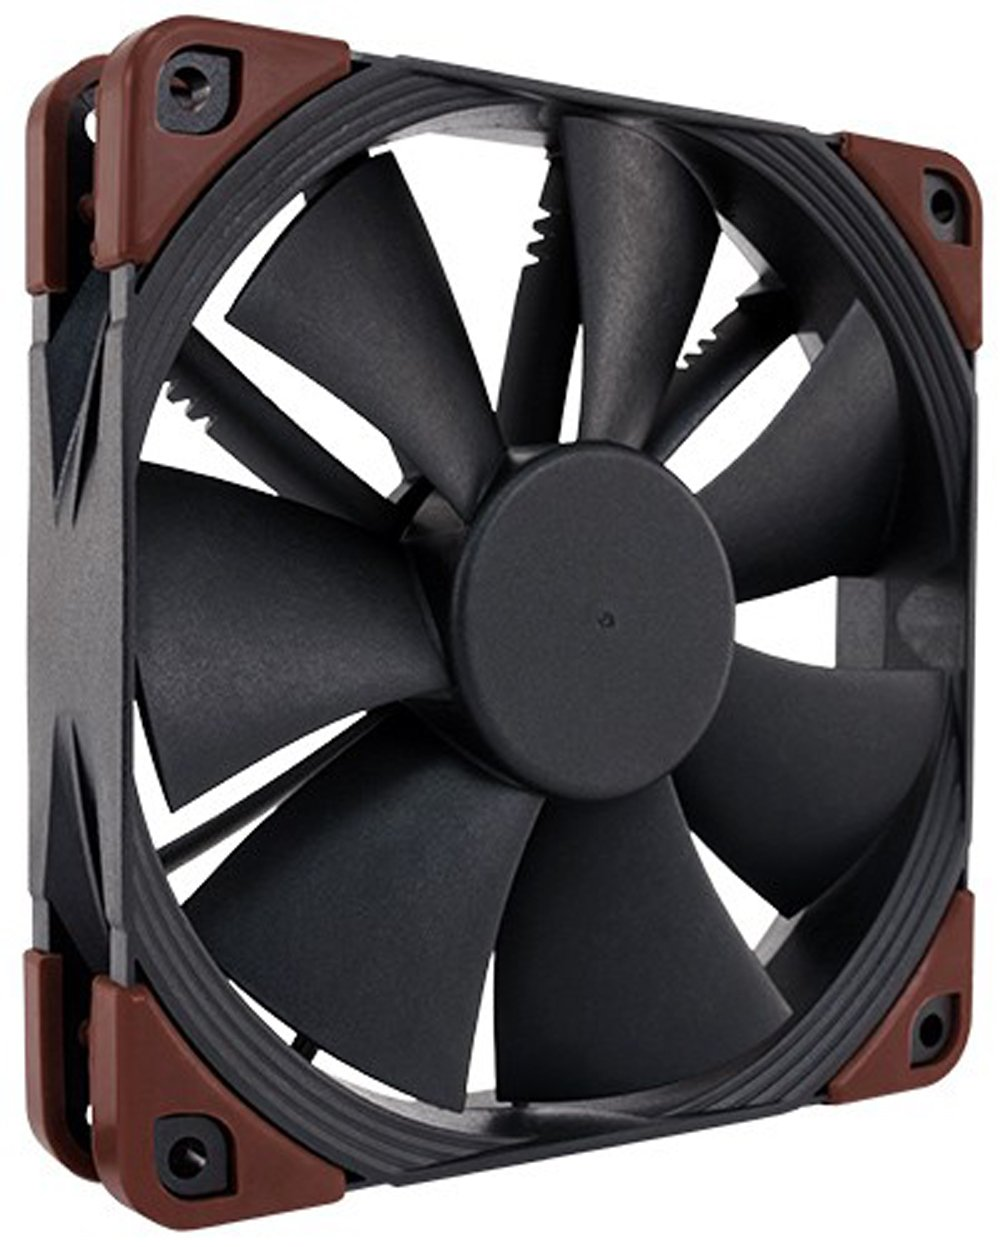 Fan Cooler Noctua Nf-f12 Ippc 3000 Pwm  4-pin